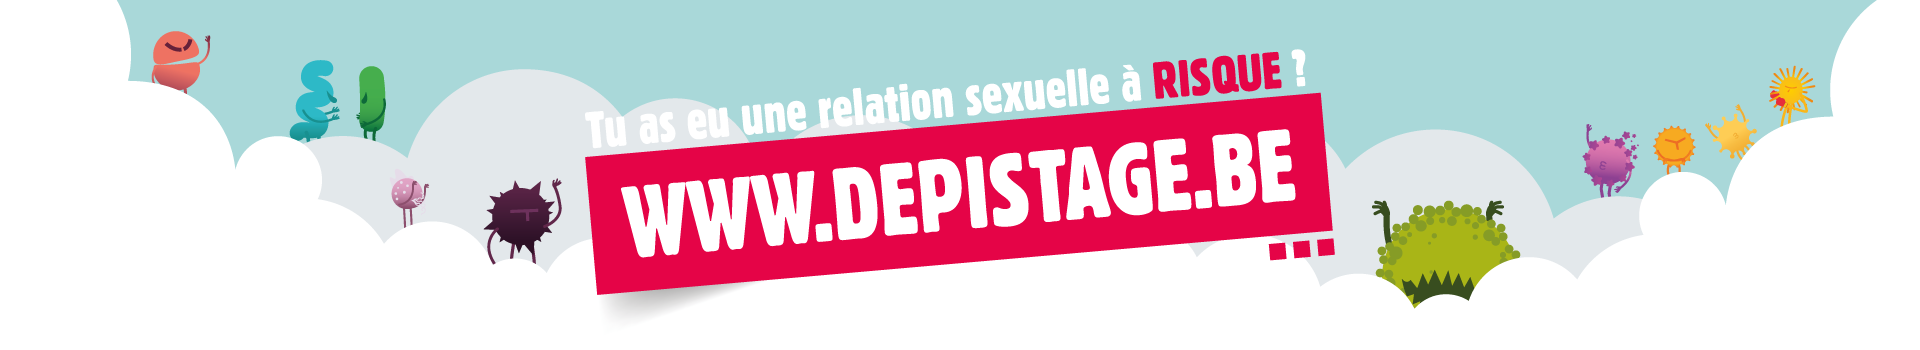 Depistage.be - O'YES ASBL